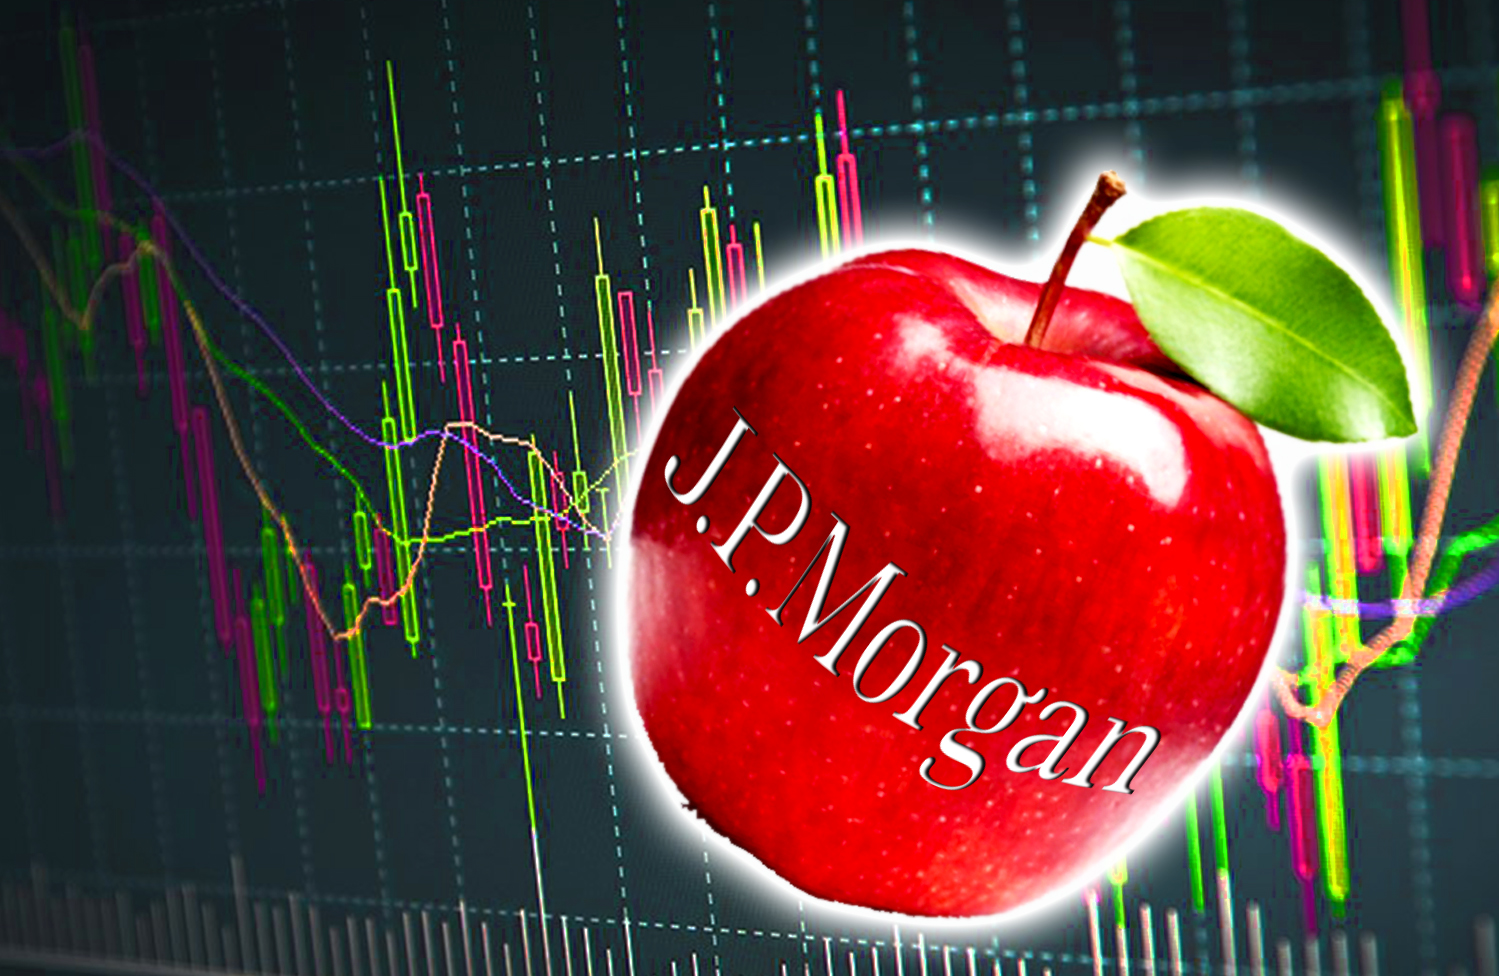 aapl stock price JP Morgan